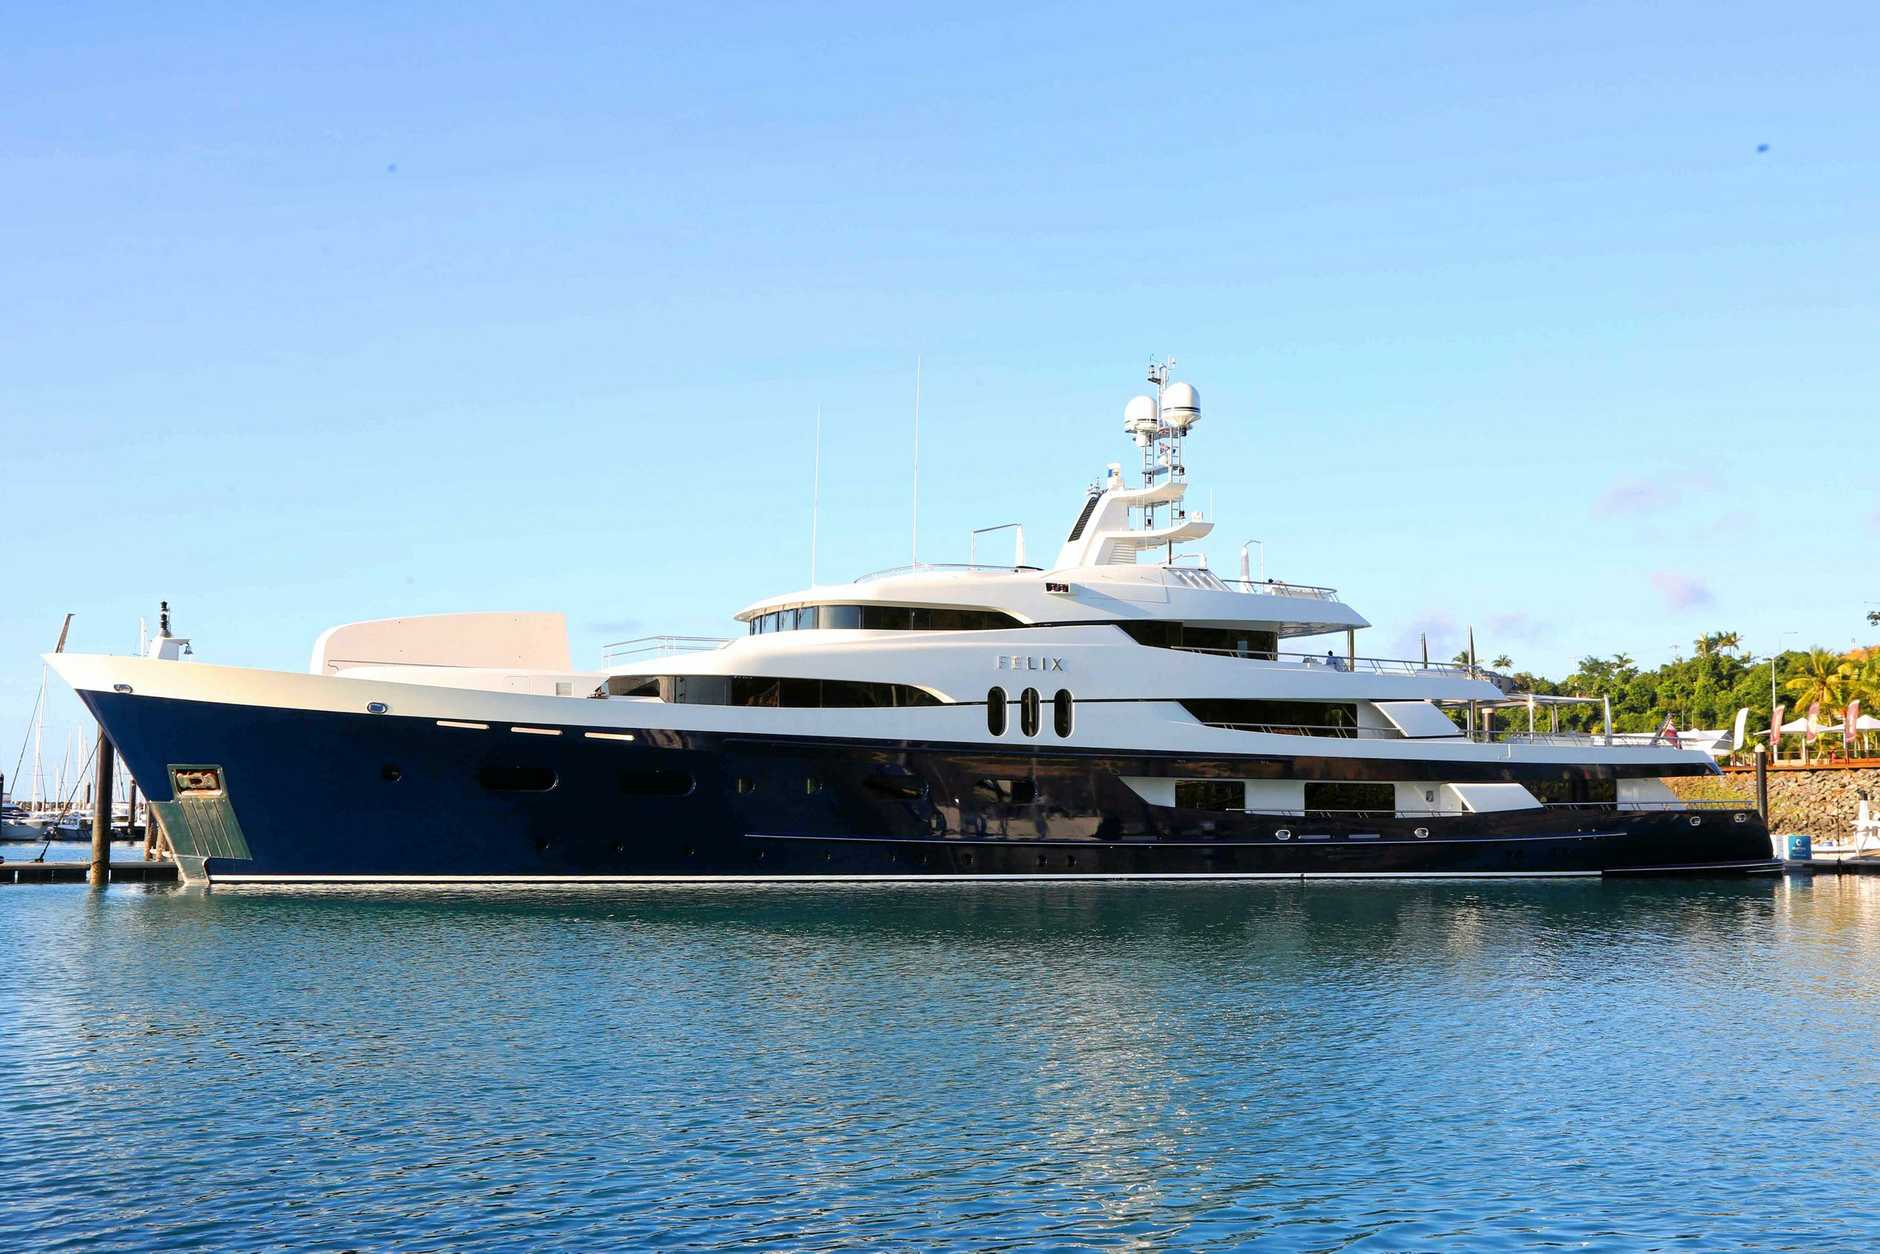 BUILDING OUR HARBOURS: Fraser Coast Tourism and Events general manager Martin Simons said Hervey Bay harbours need massive upgrades to be able to host superyachts in the future.